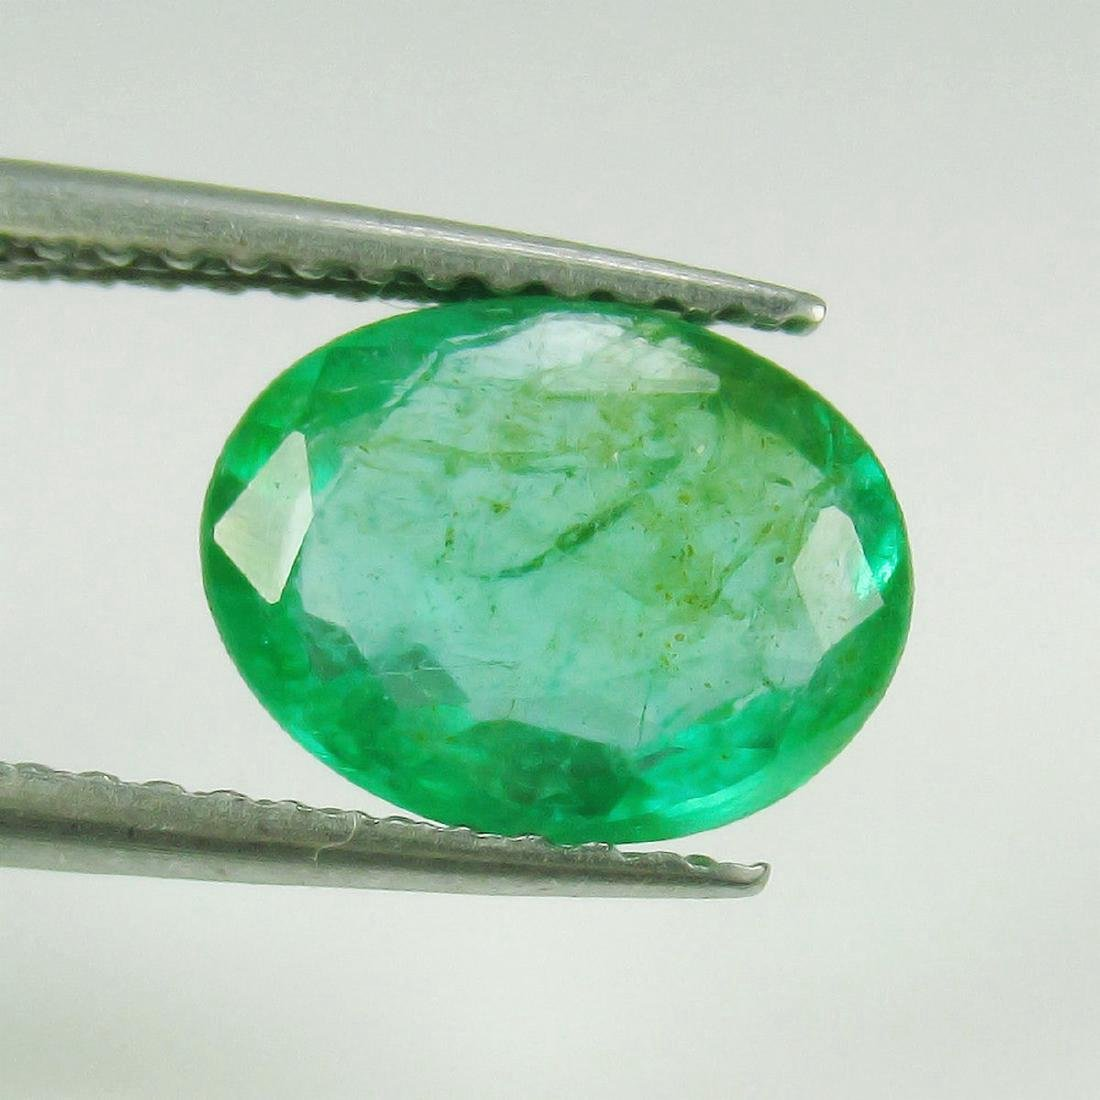 1.72 Carat Natural Zambian Loose Oval cut Emerald